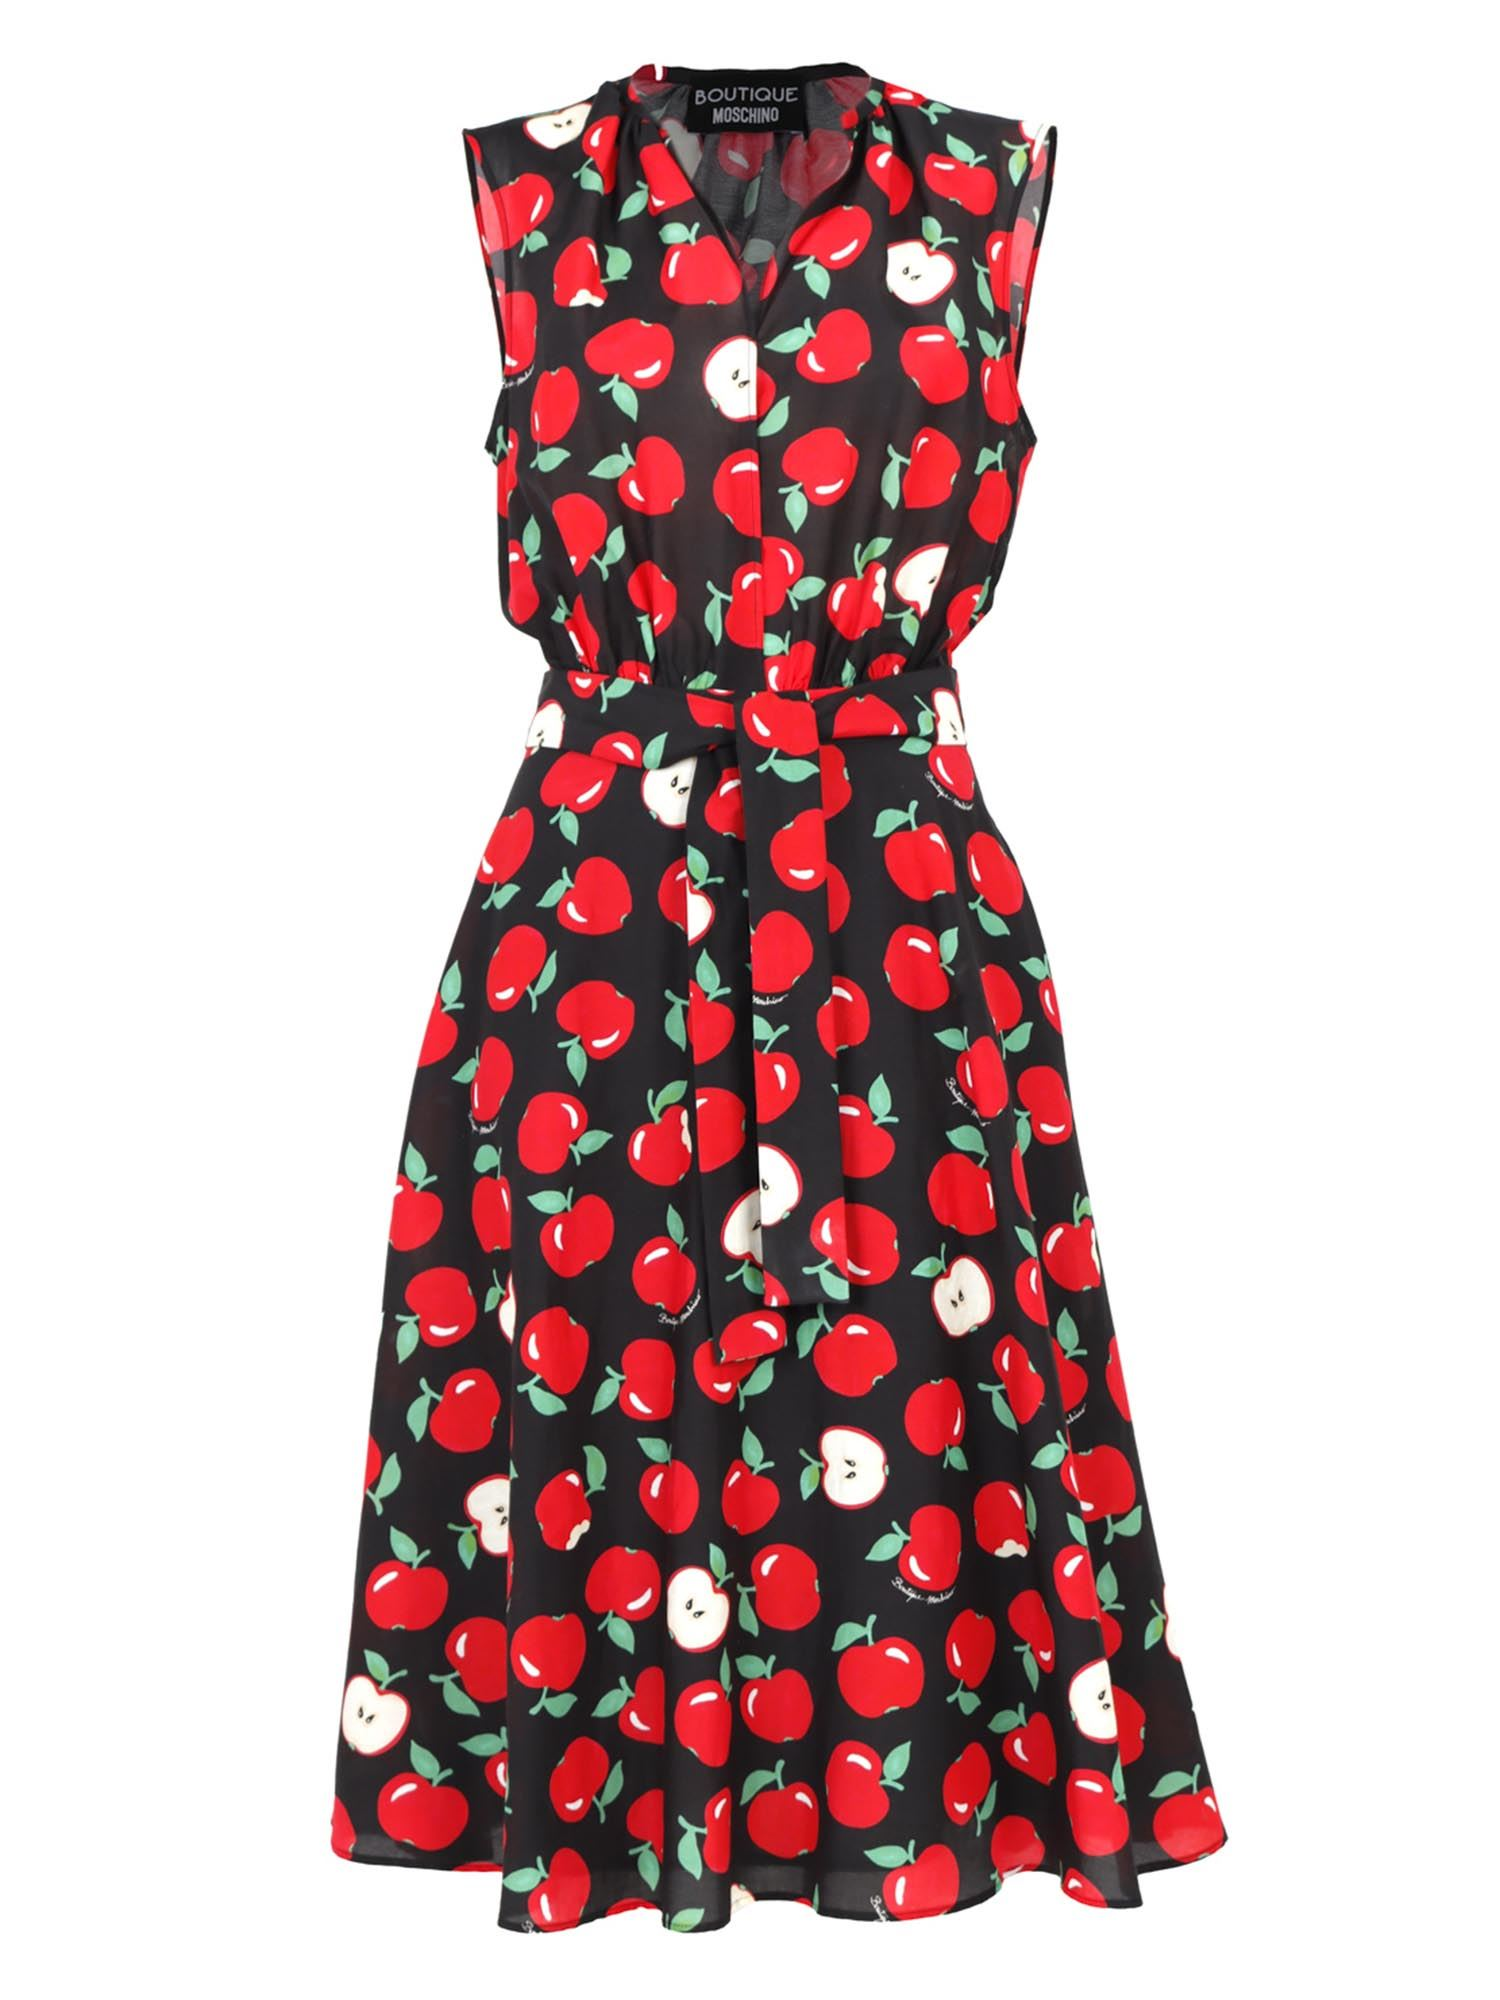 Moschino Boutique Silks MOSCHINO BOUTIQUE APPLE PRINTED DRESS IN BLACK AND RED